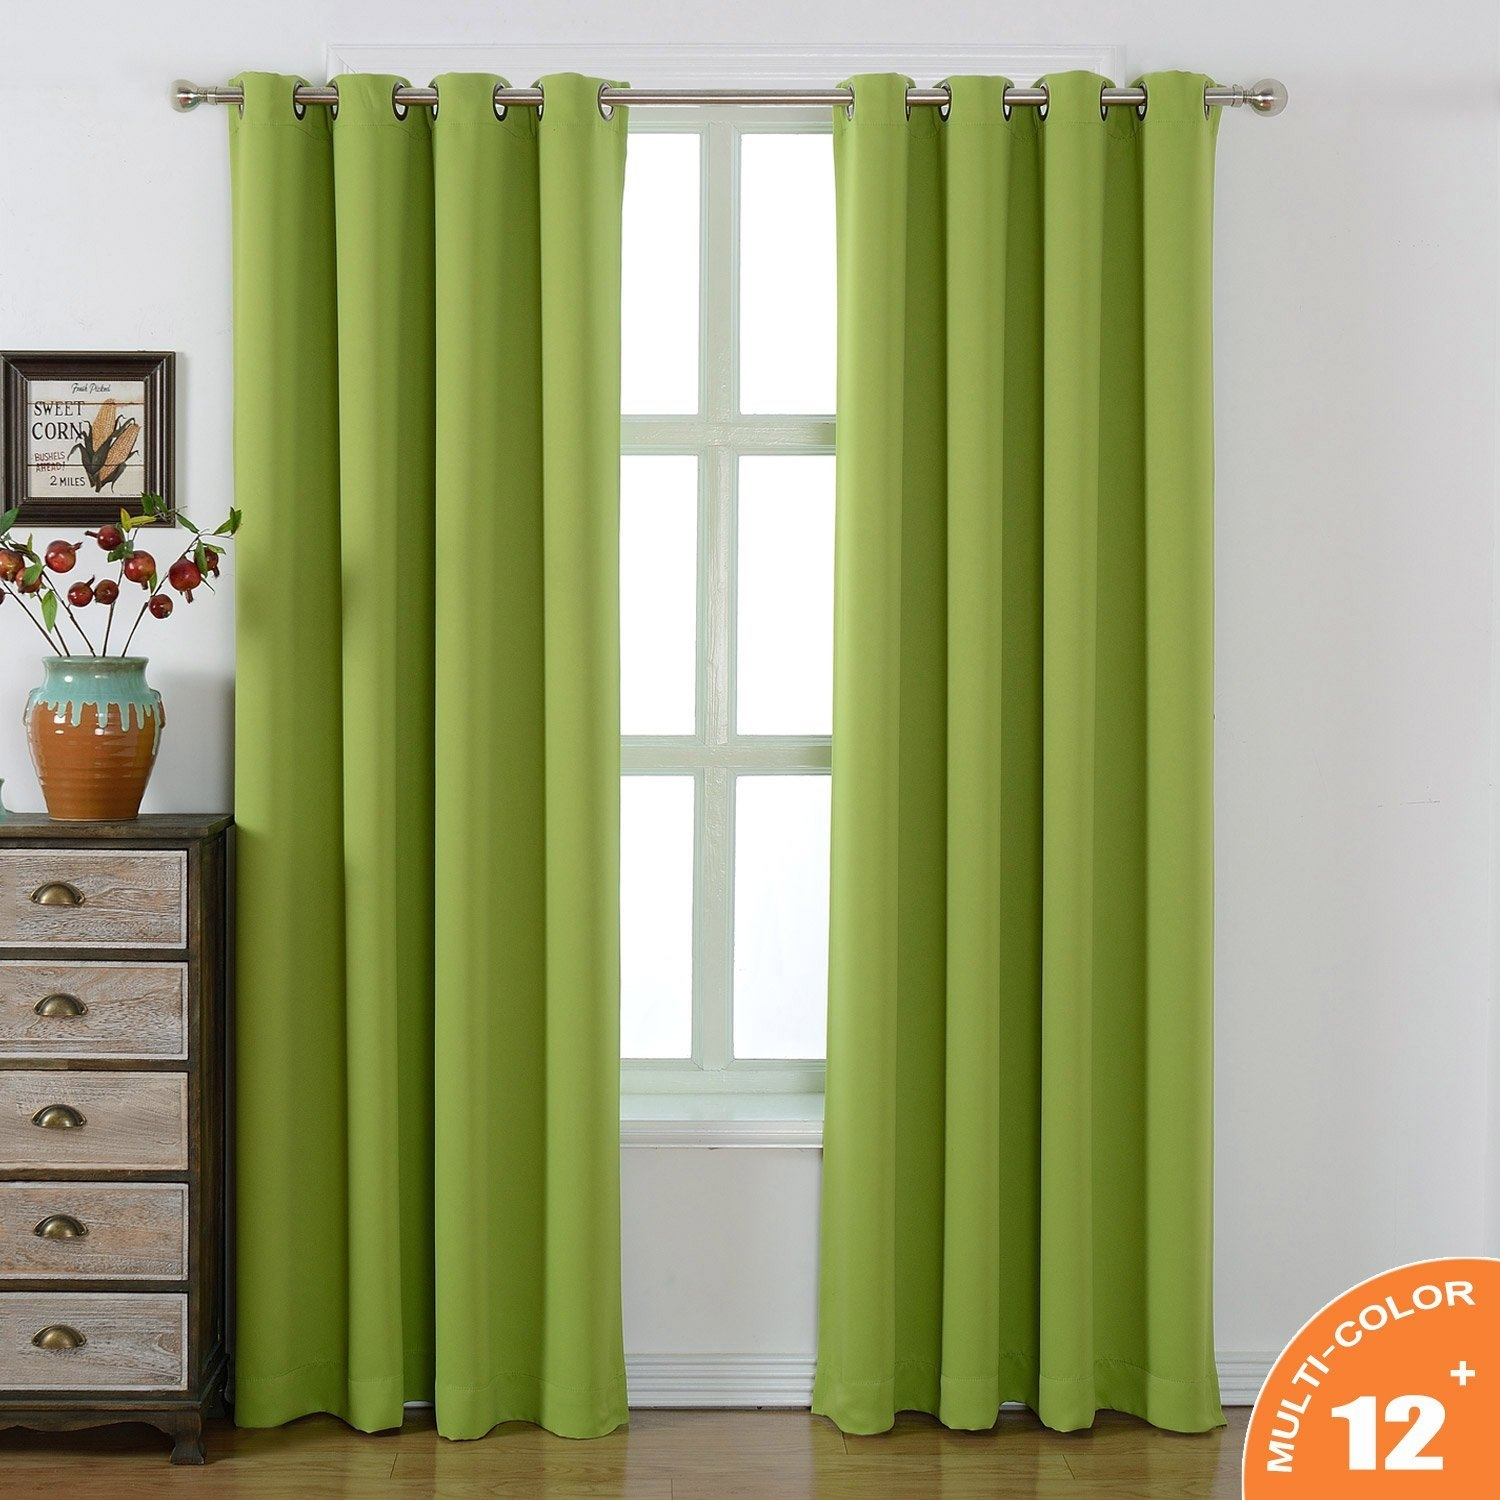 Curtain For Doors With Glass Decorate The House With Beautiful Regarding Single Curtains For Doors (Image 4 of 15)